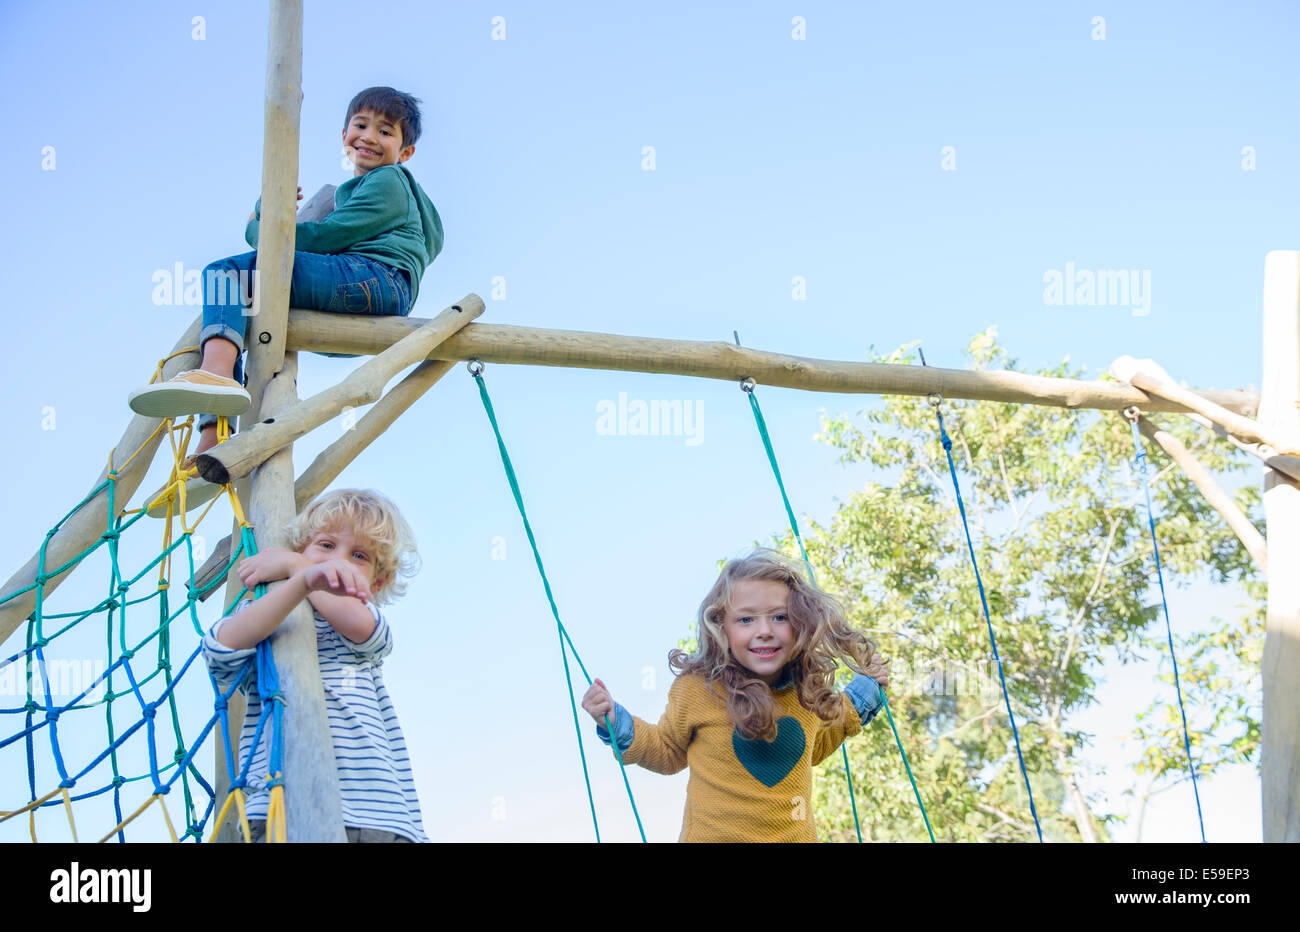 Children playing on play structure Stock Photo